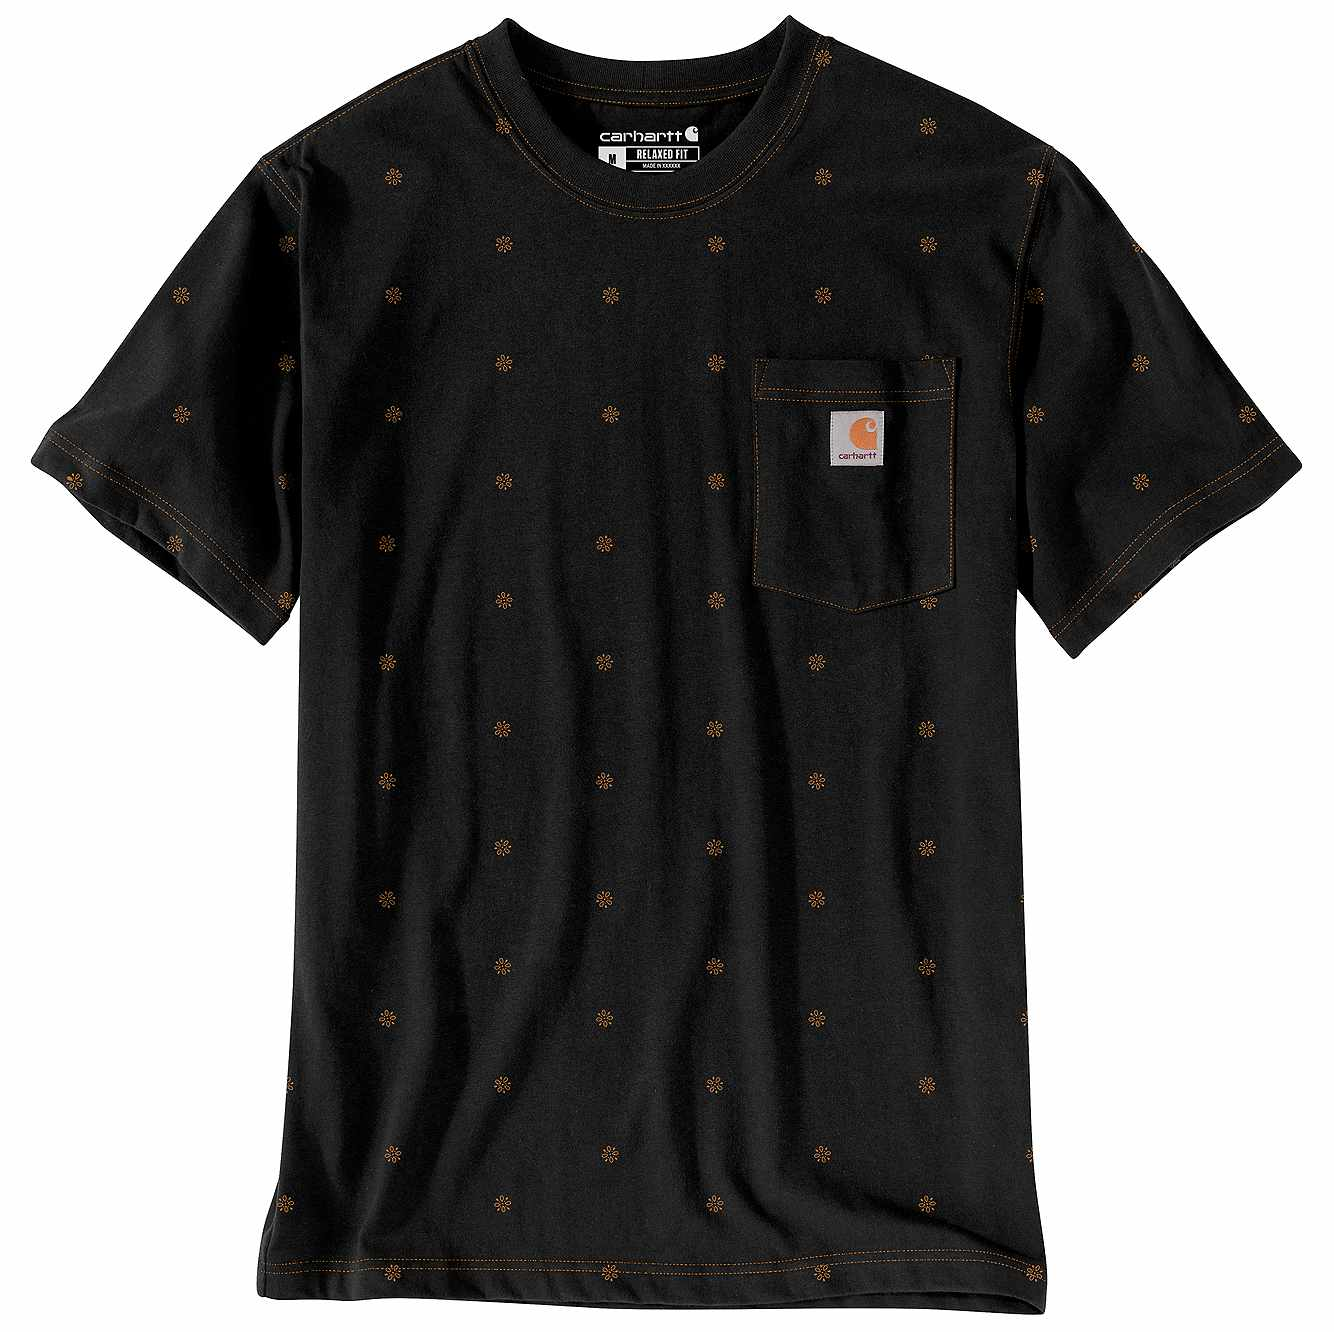 Picture of Relaxed Fit Heavyweight Short-Sleeve Pocket Dot T-Shirt in Black